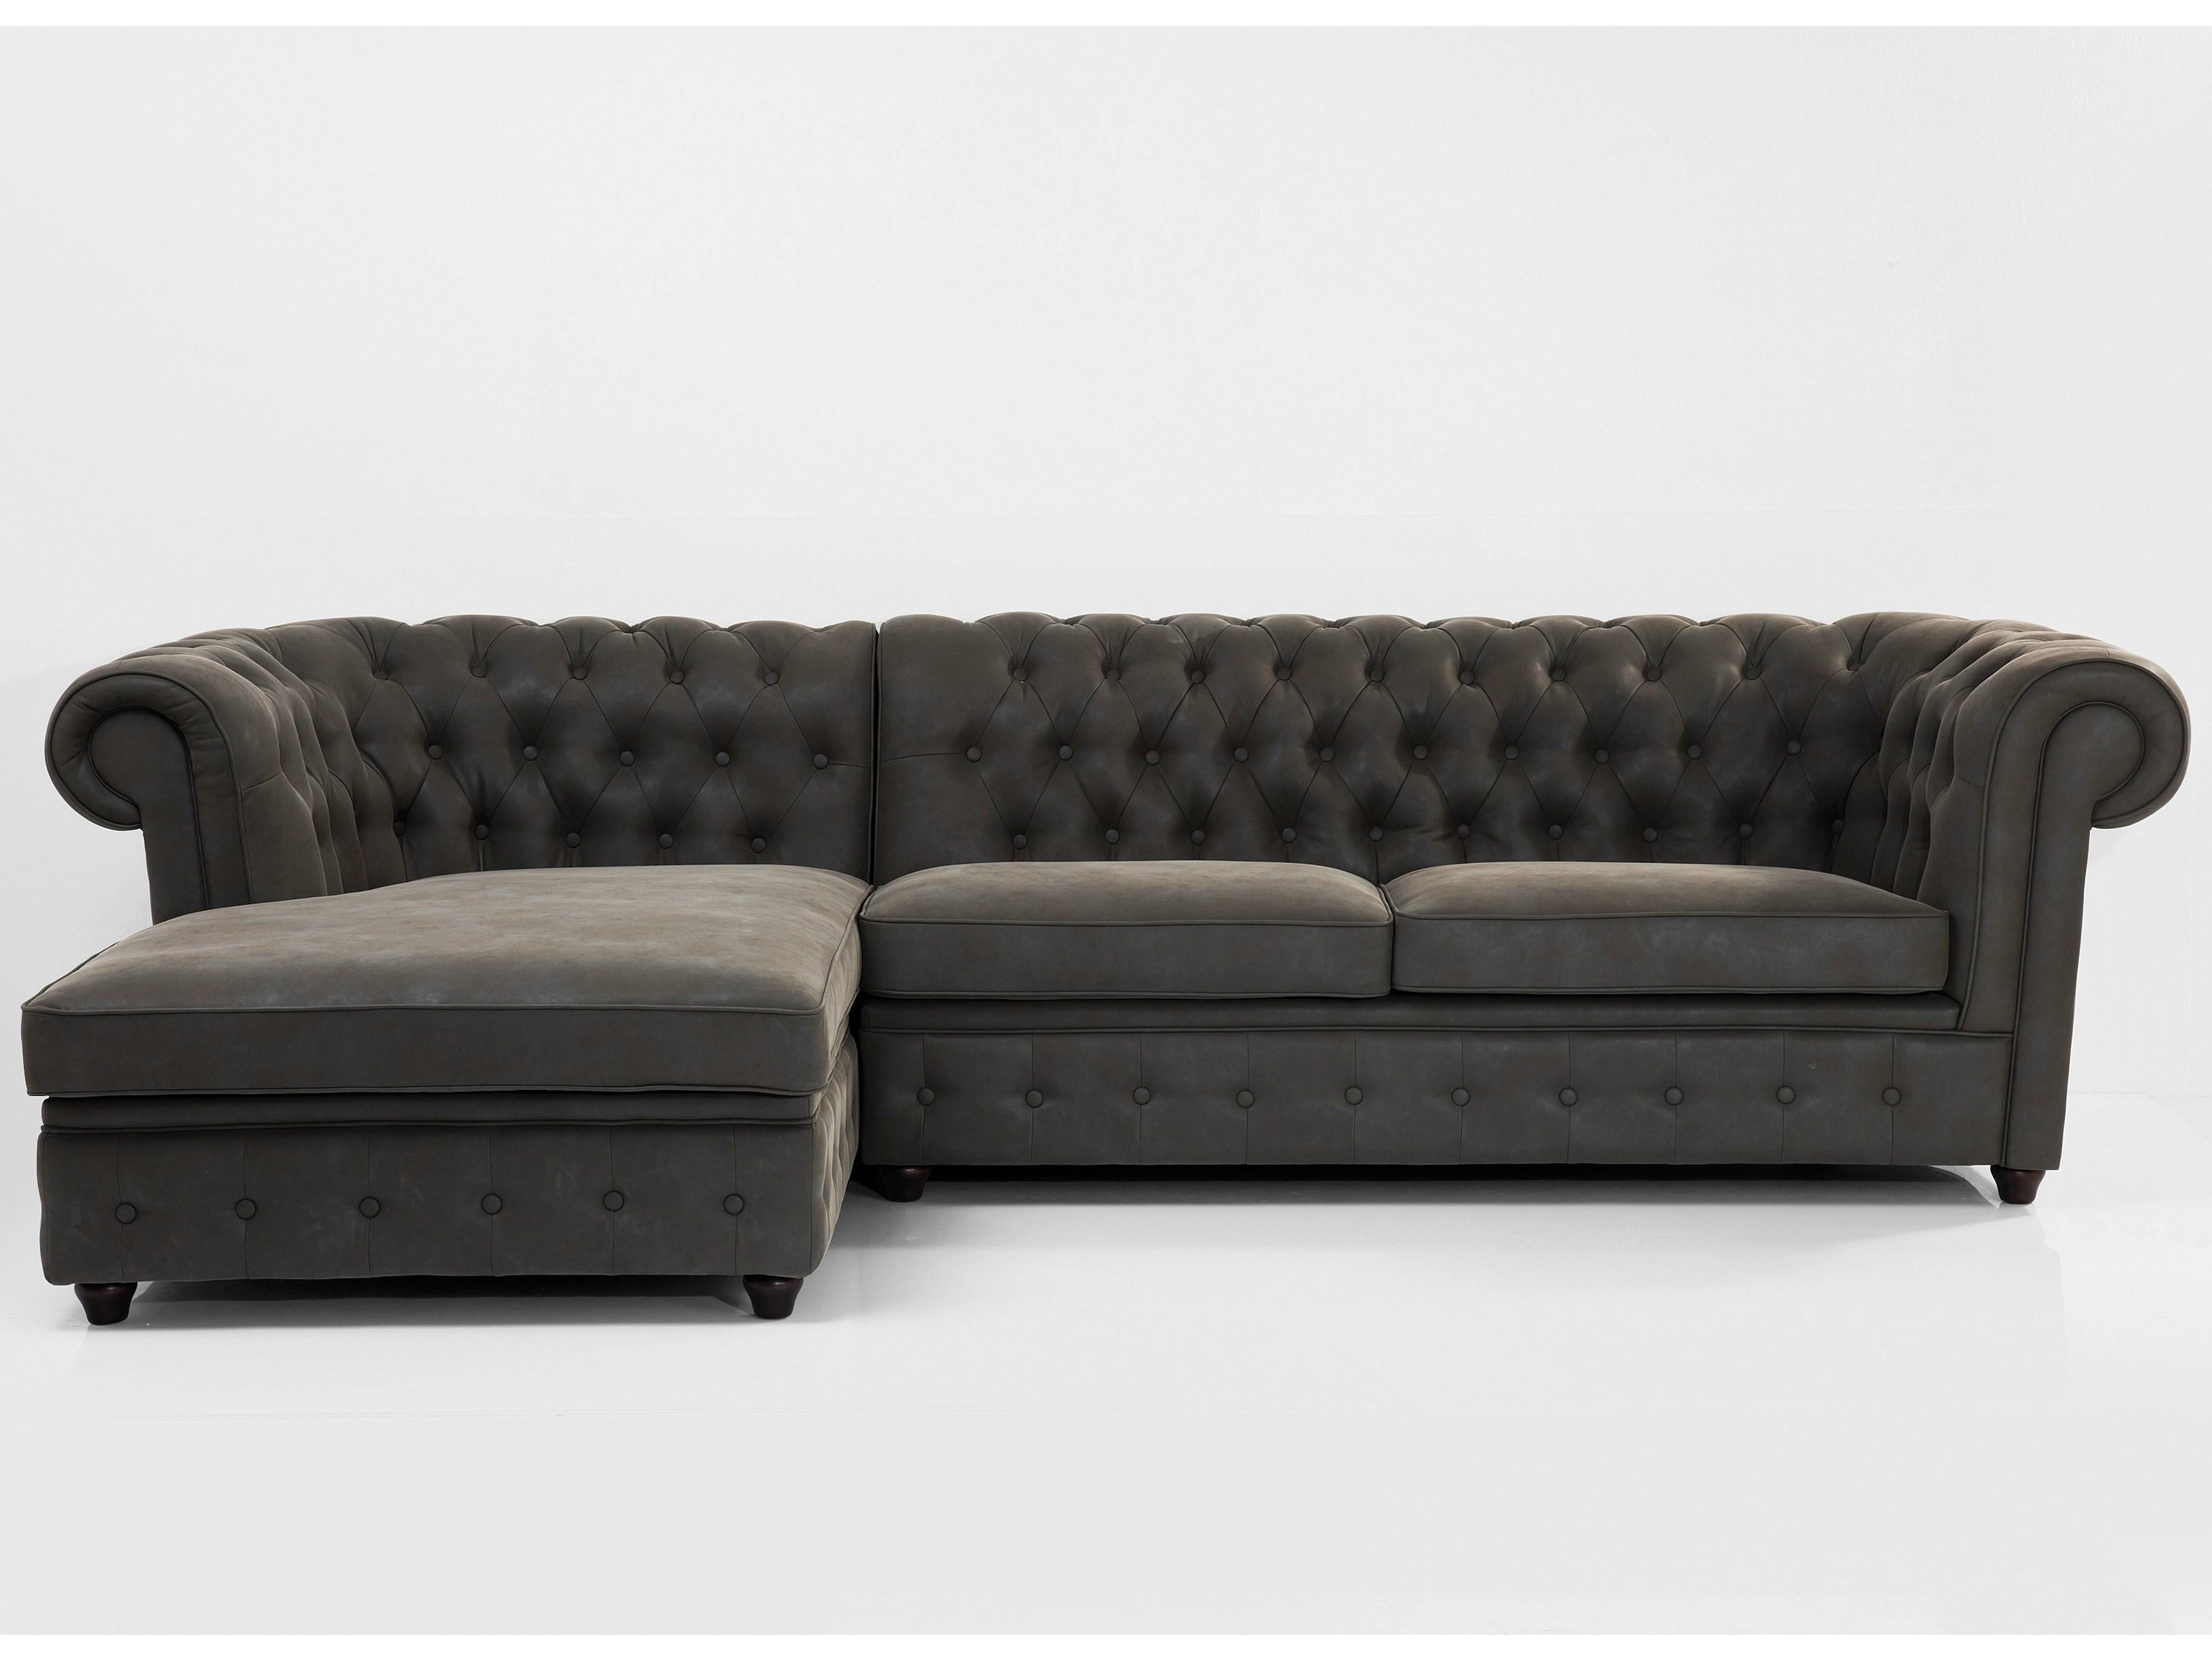 Corner 3 Seater Sofa Oxford Graphitekare Design Pertaining To Oxford Sofas (View 11 of 20)